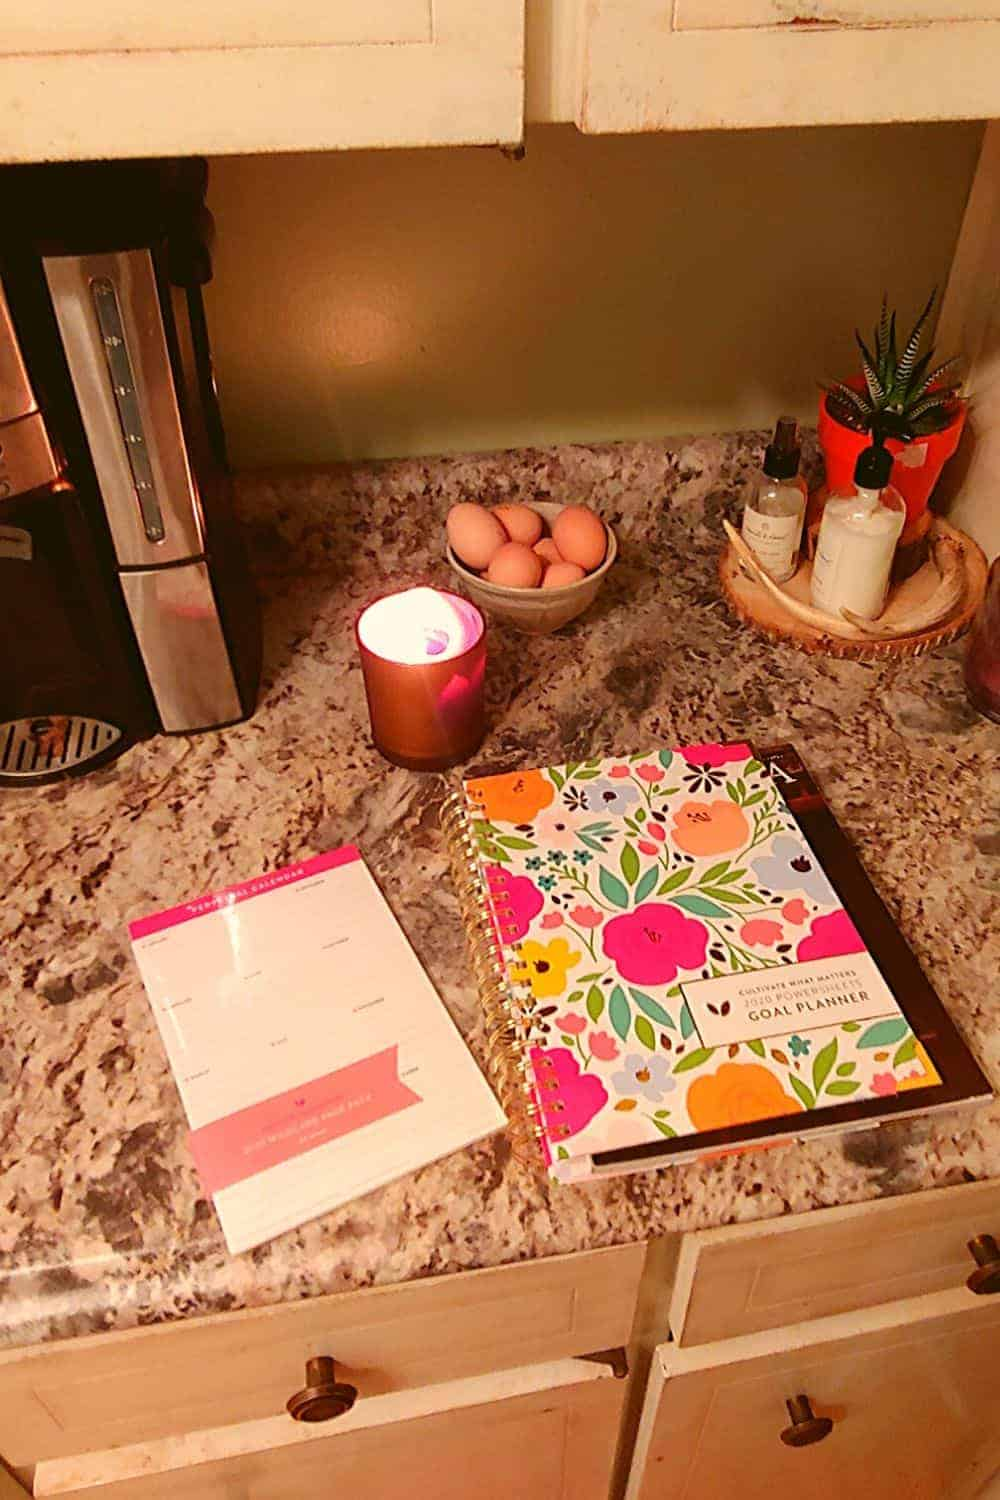 powersheets goal planner from cultivate what matters